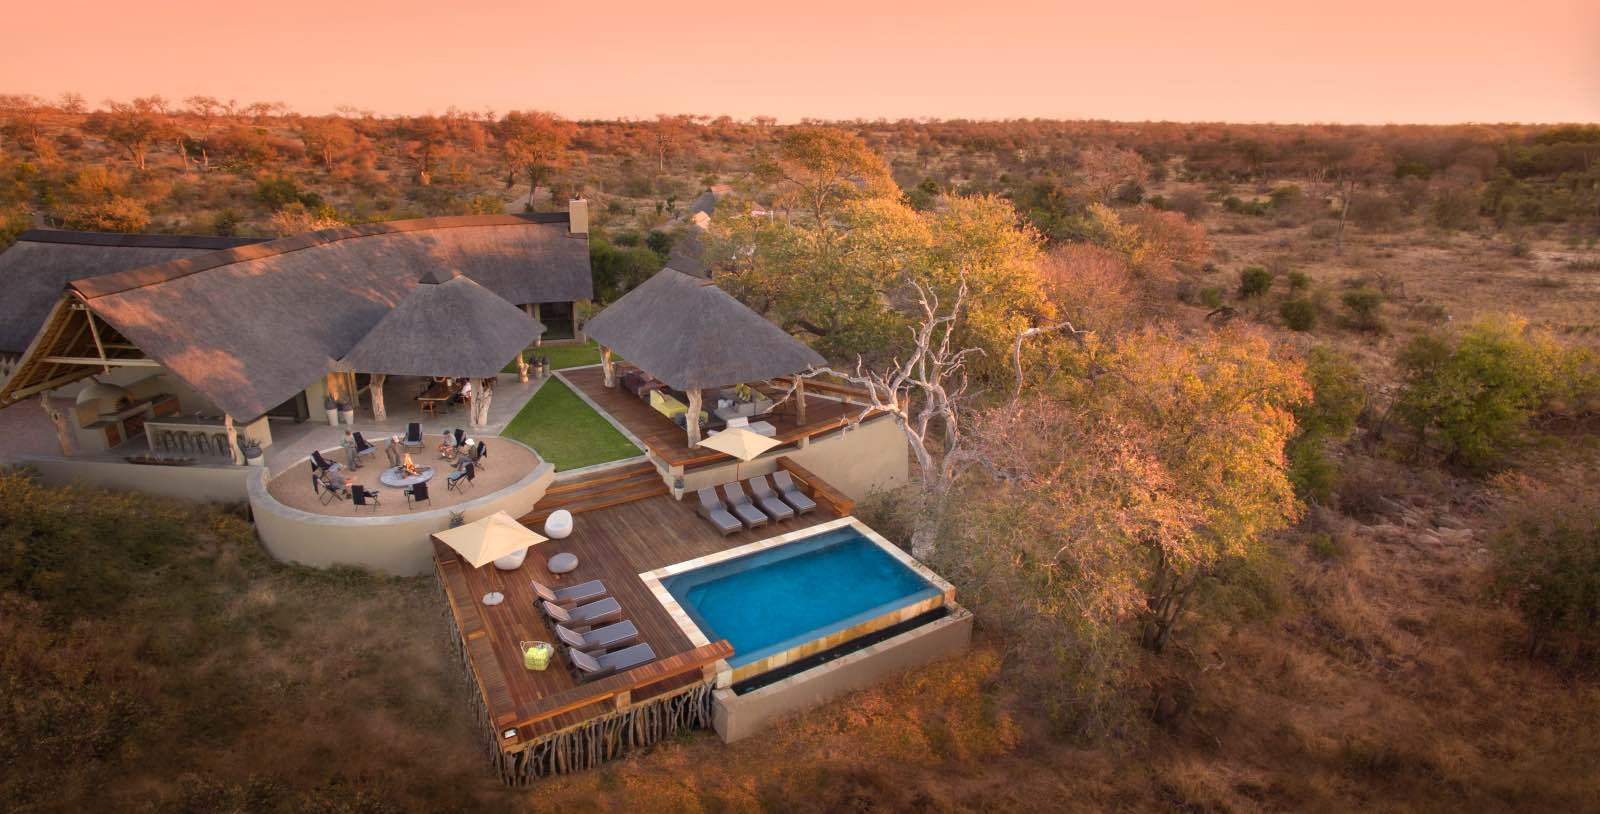 Rockfig from the air looking down on the pool, boma, and main lodge under thatch